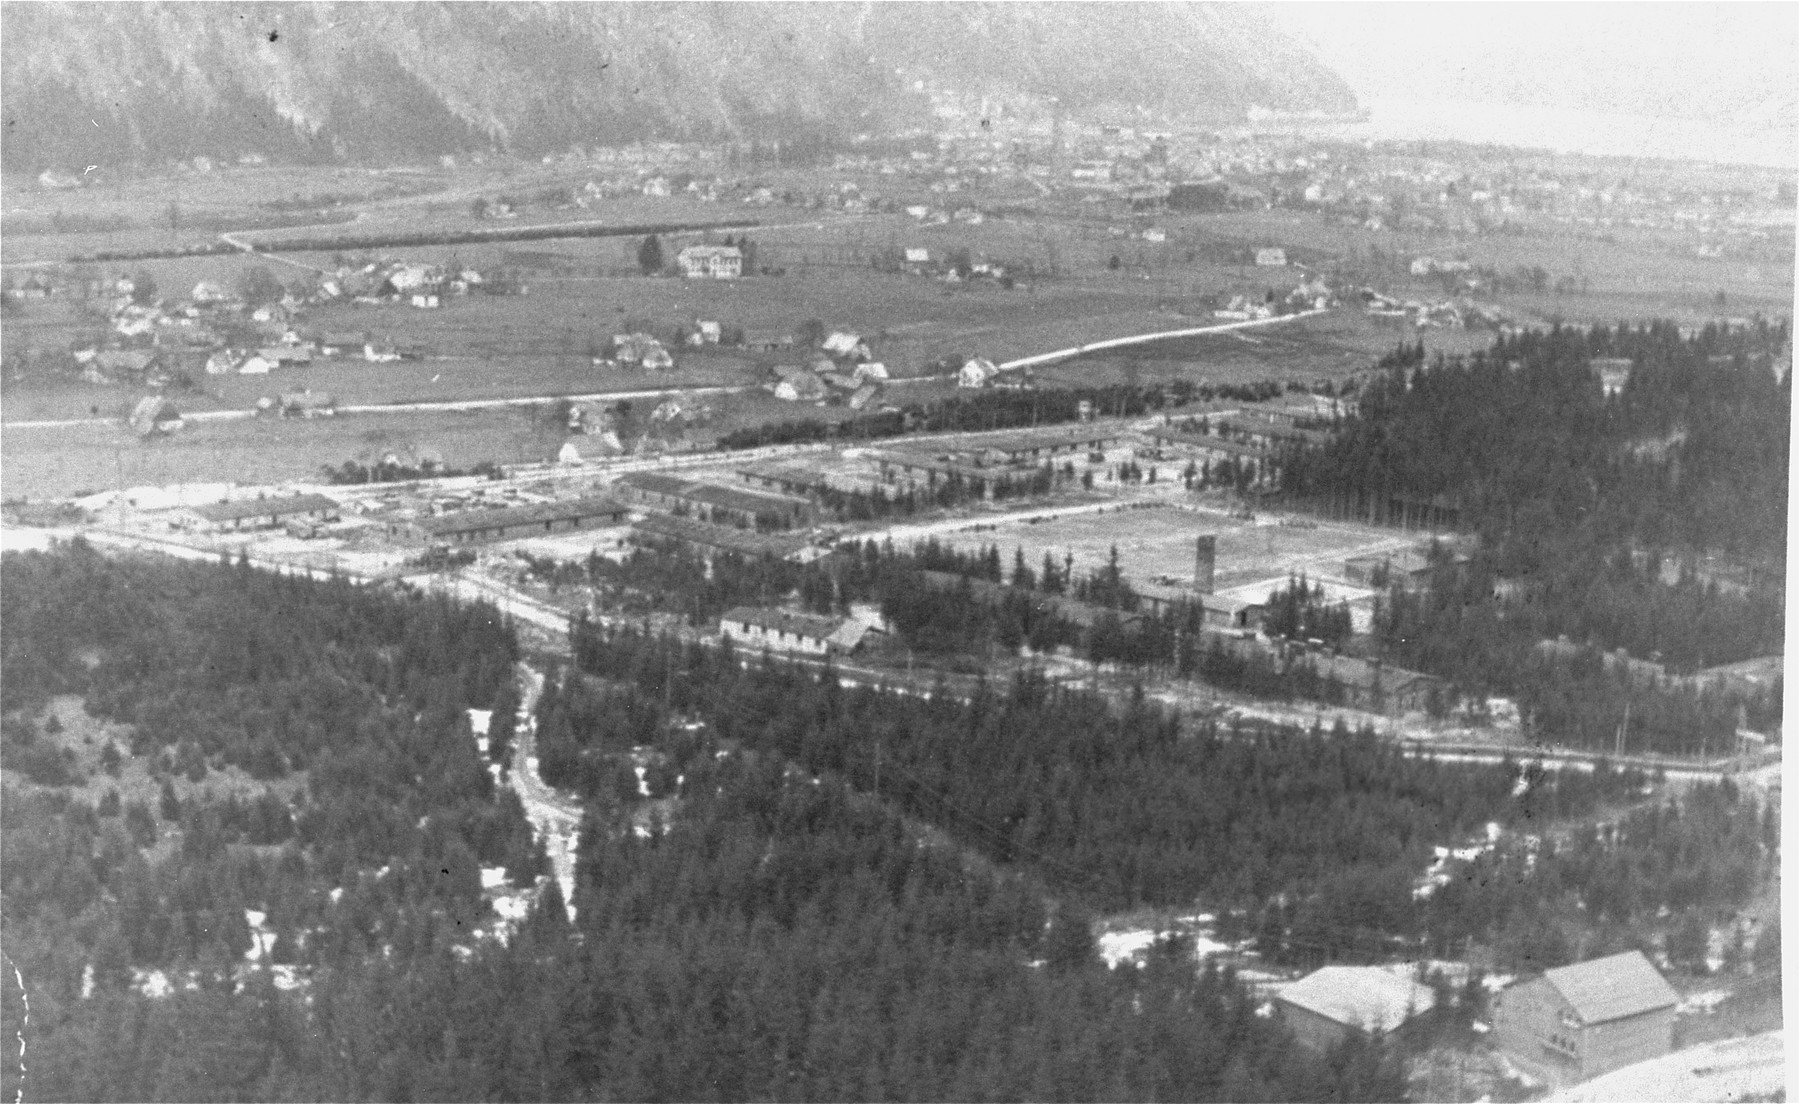 Aerial view of the Ebensee concentration camp.